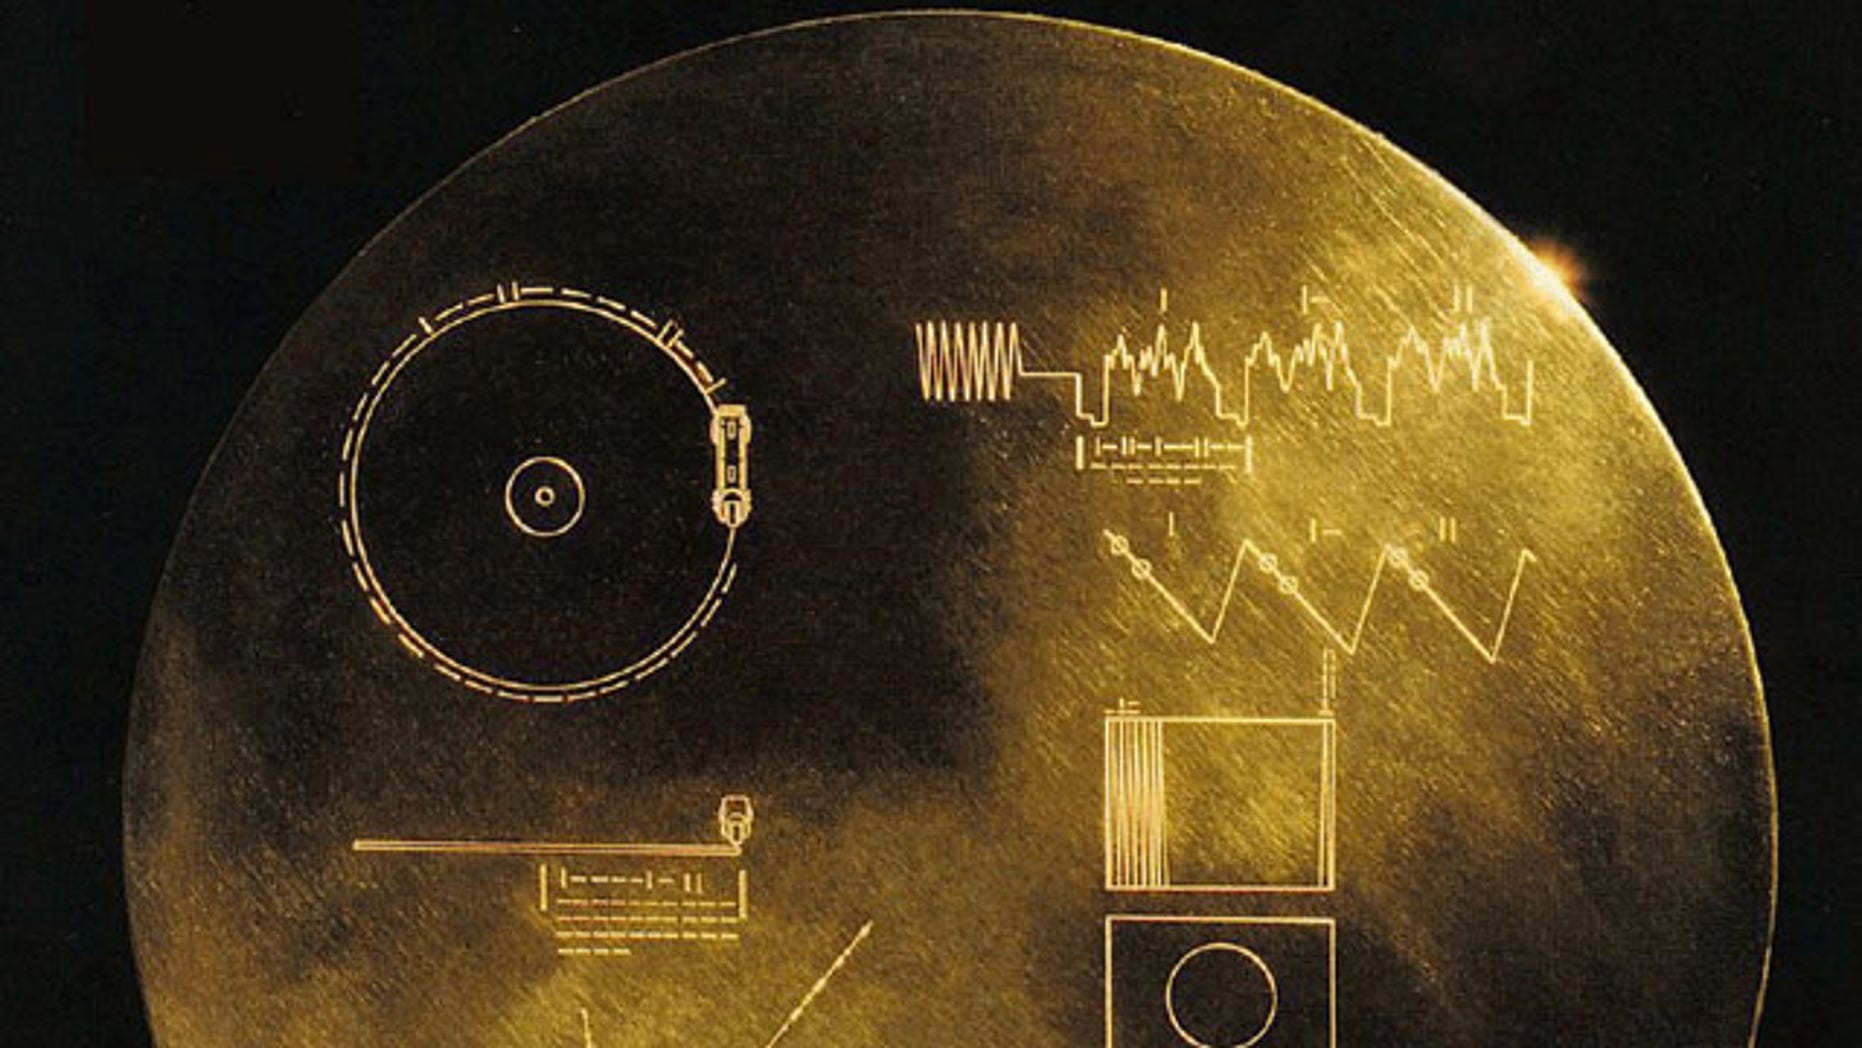 In 1977 NASA's Voyager 1 and 2 spacecraft launched into space carrying phonographs called the Golden Records containing pictures and sounds meant to show extraterrestrials a glimpse of life on Earth.